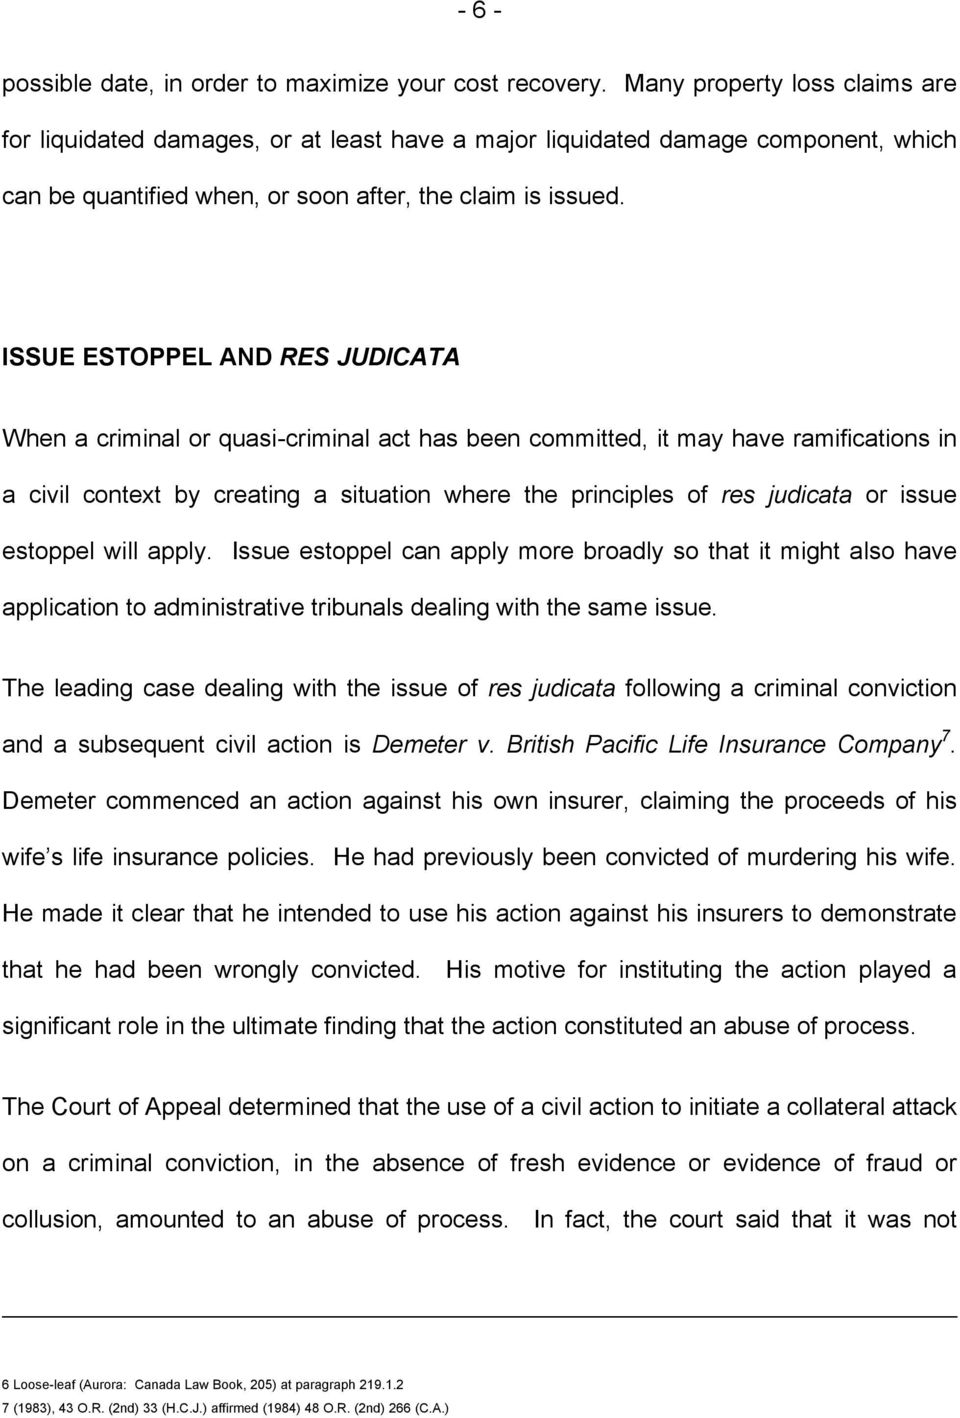 ISSUE ESTOPPEL AND RES JUDICATA When a criminal or quasi-criminal act has been committed, it may have ramifications in a civil context by creating a situation where the principles of res judicata or